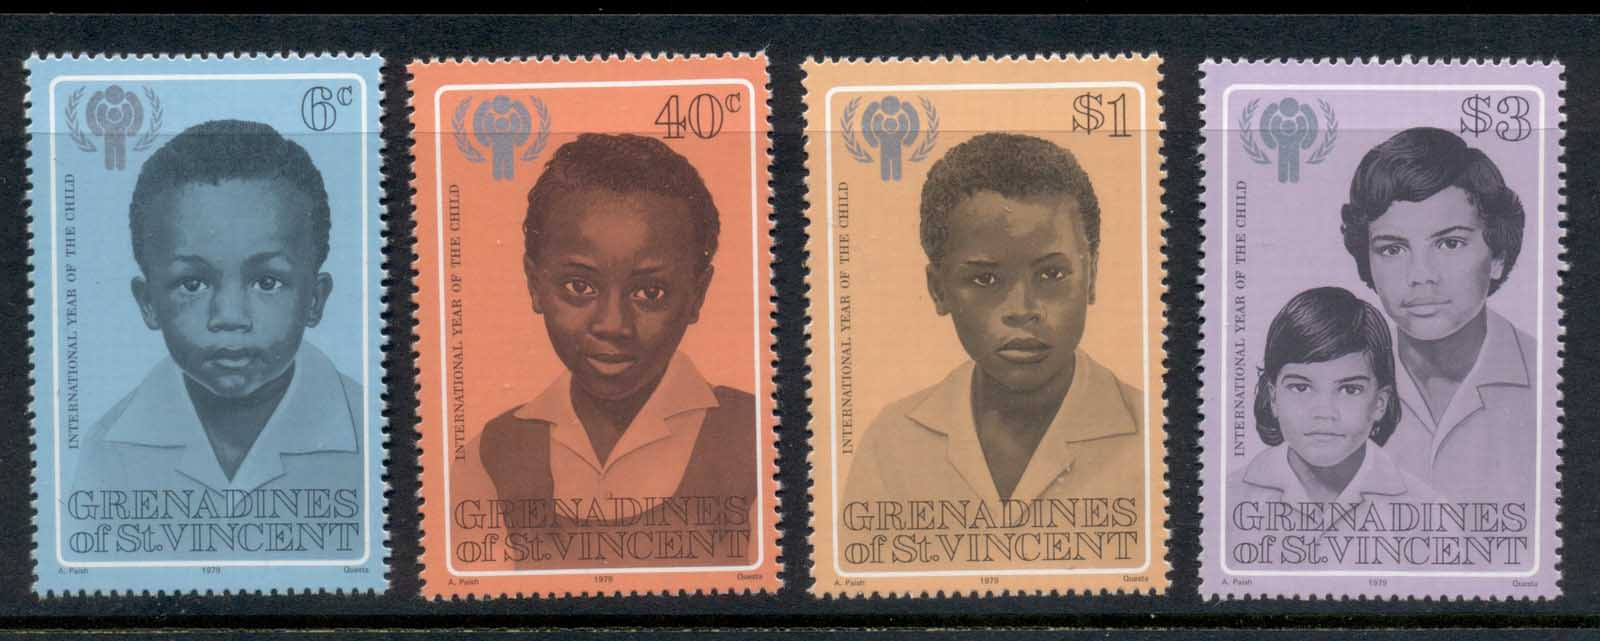 St Vincent Grenadines 1979 IYC International year of the Child MUH